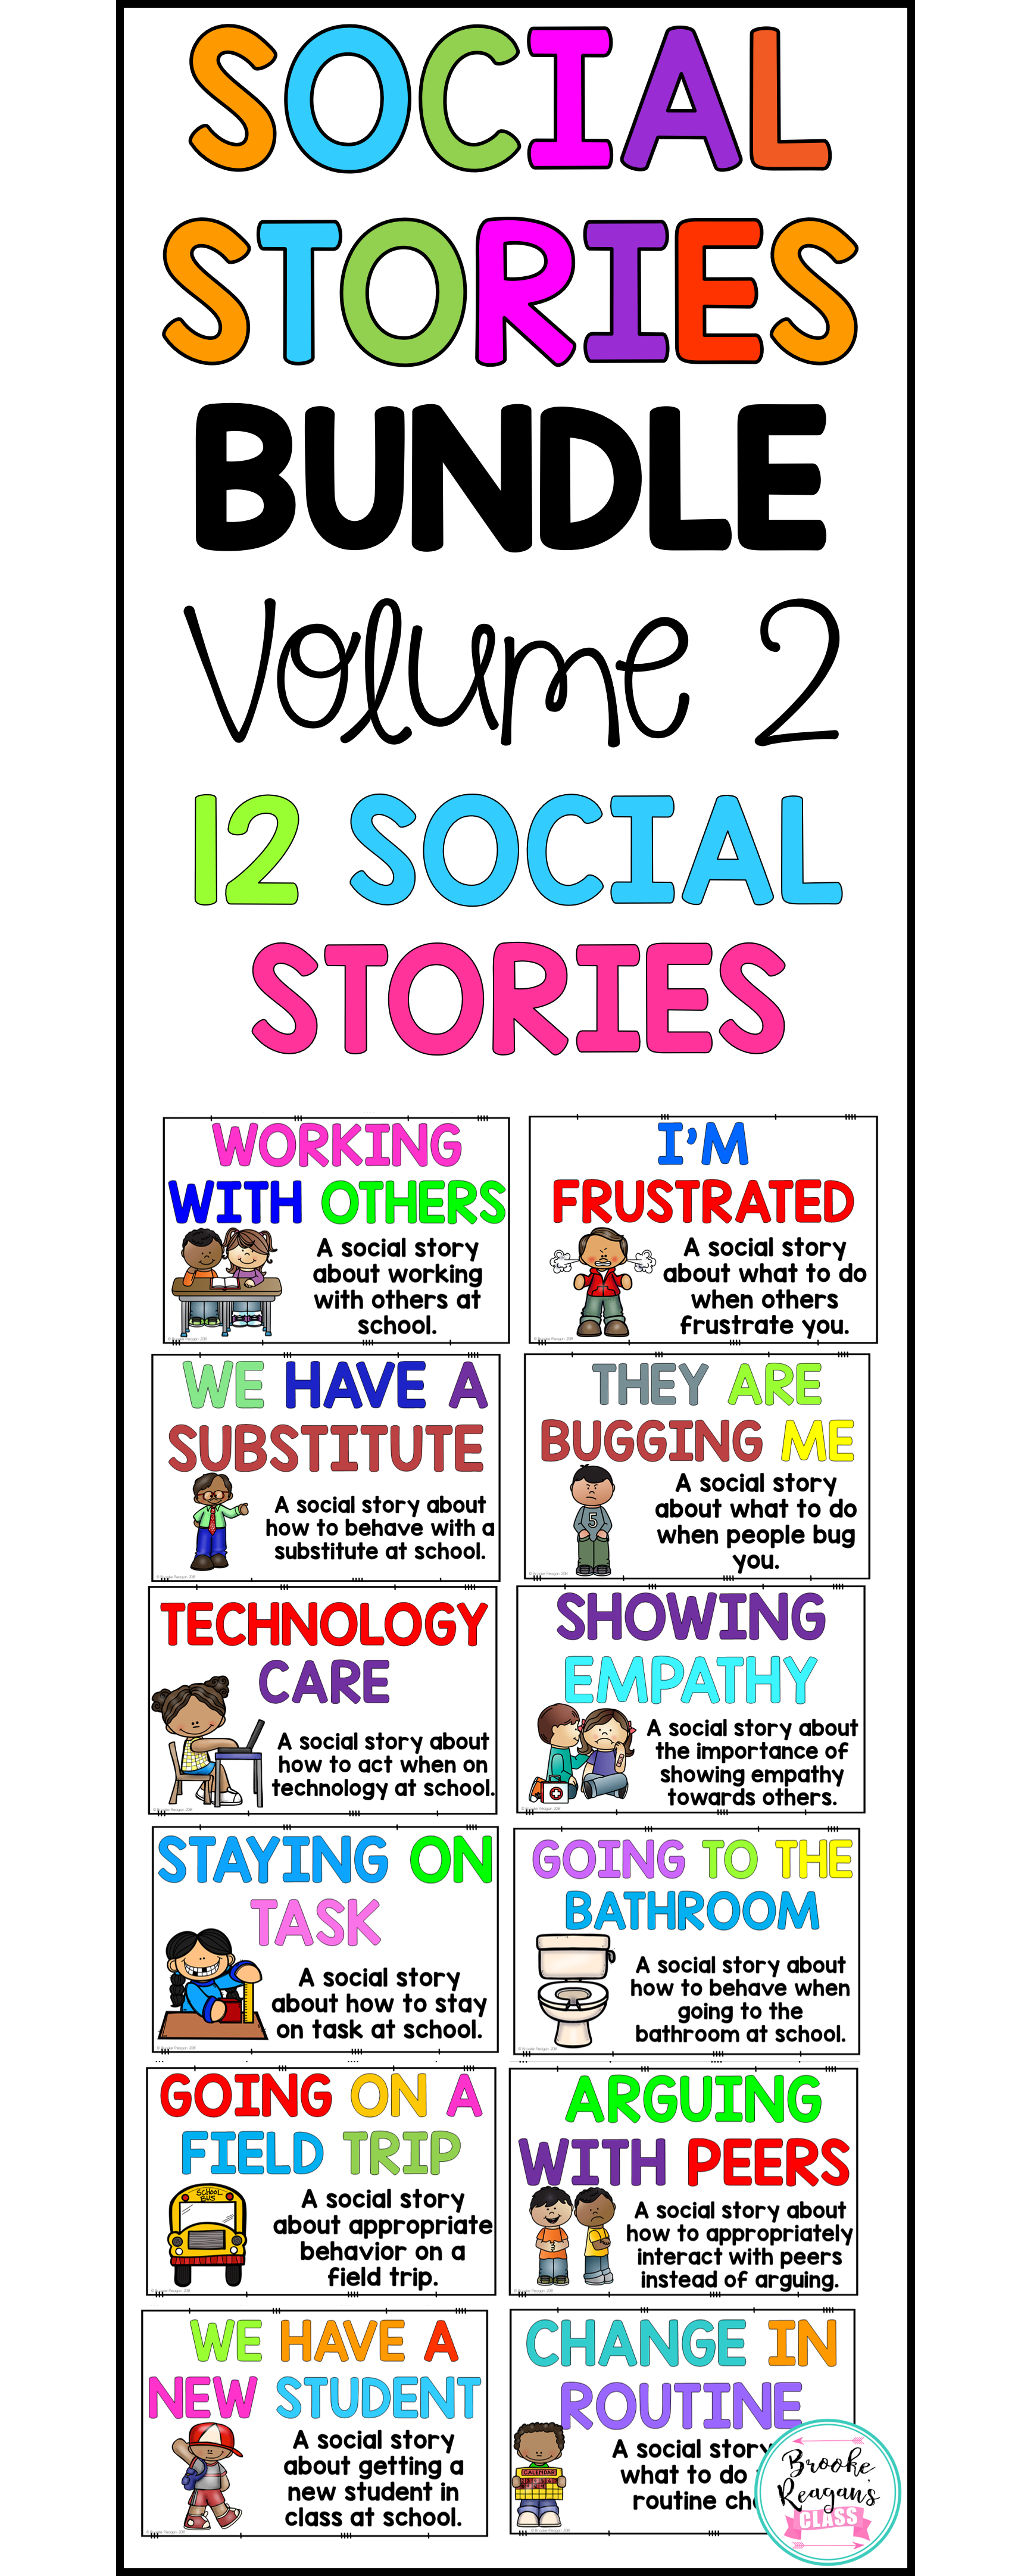 Social Story Volume 2 12 Social Stories Teaching